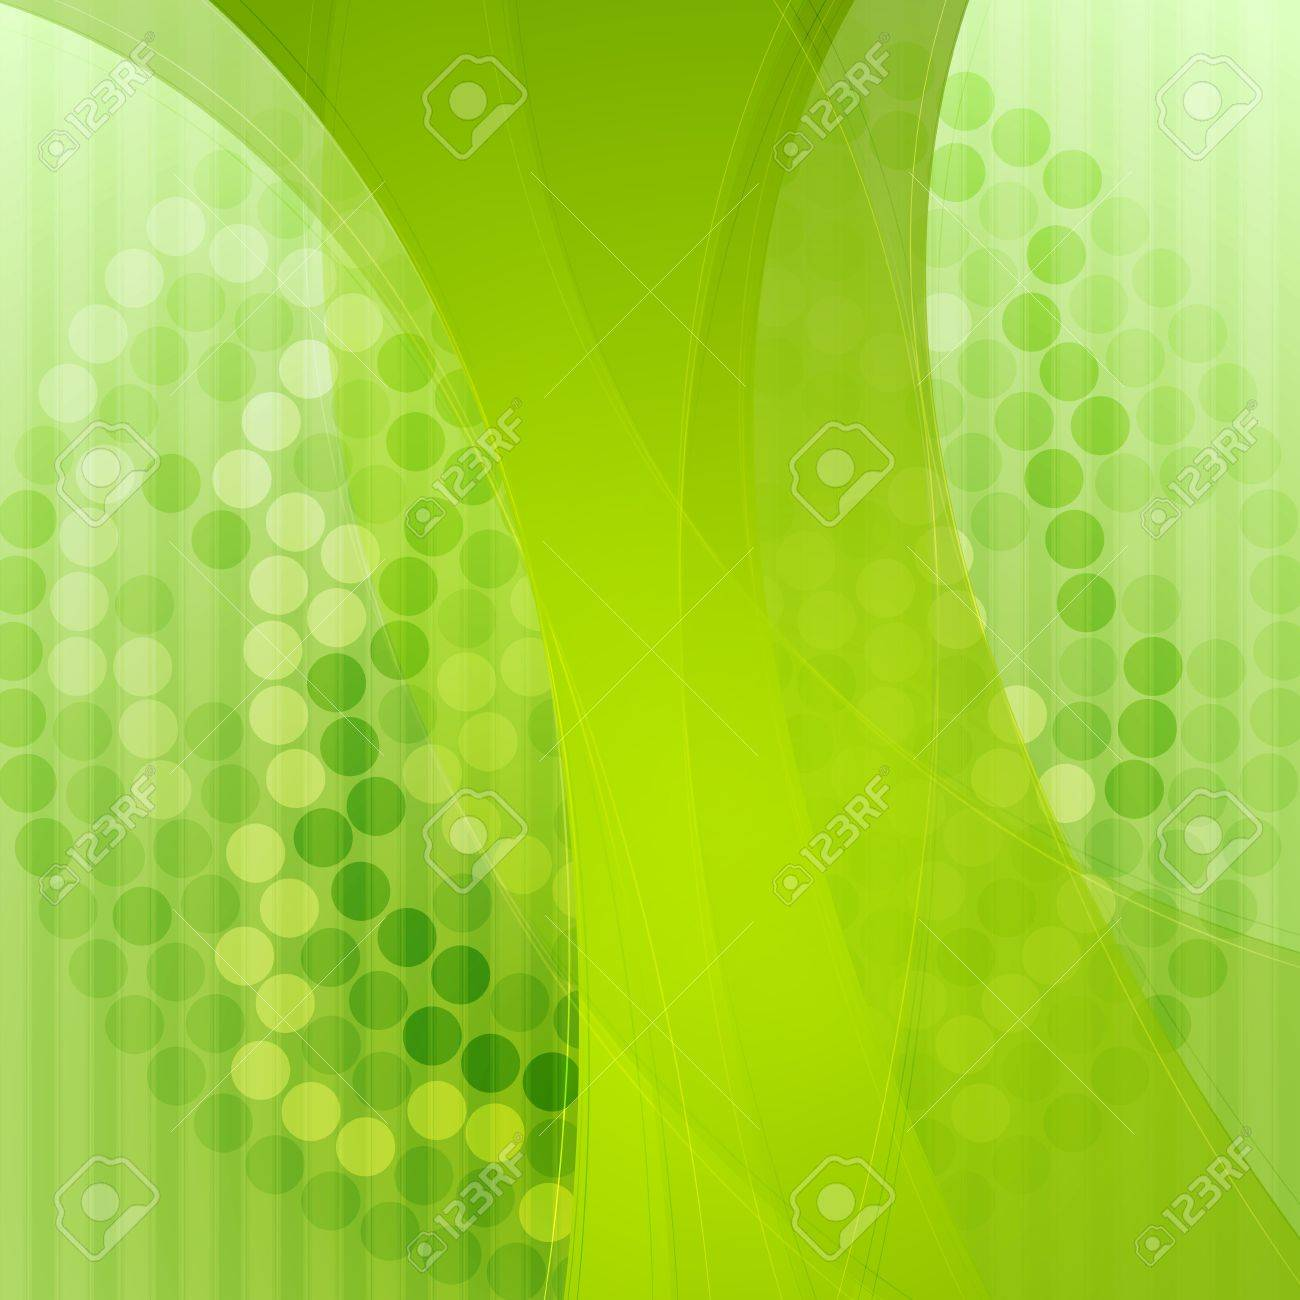 Abstract Elegant Light Green Background Vector Design